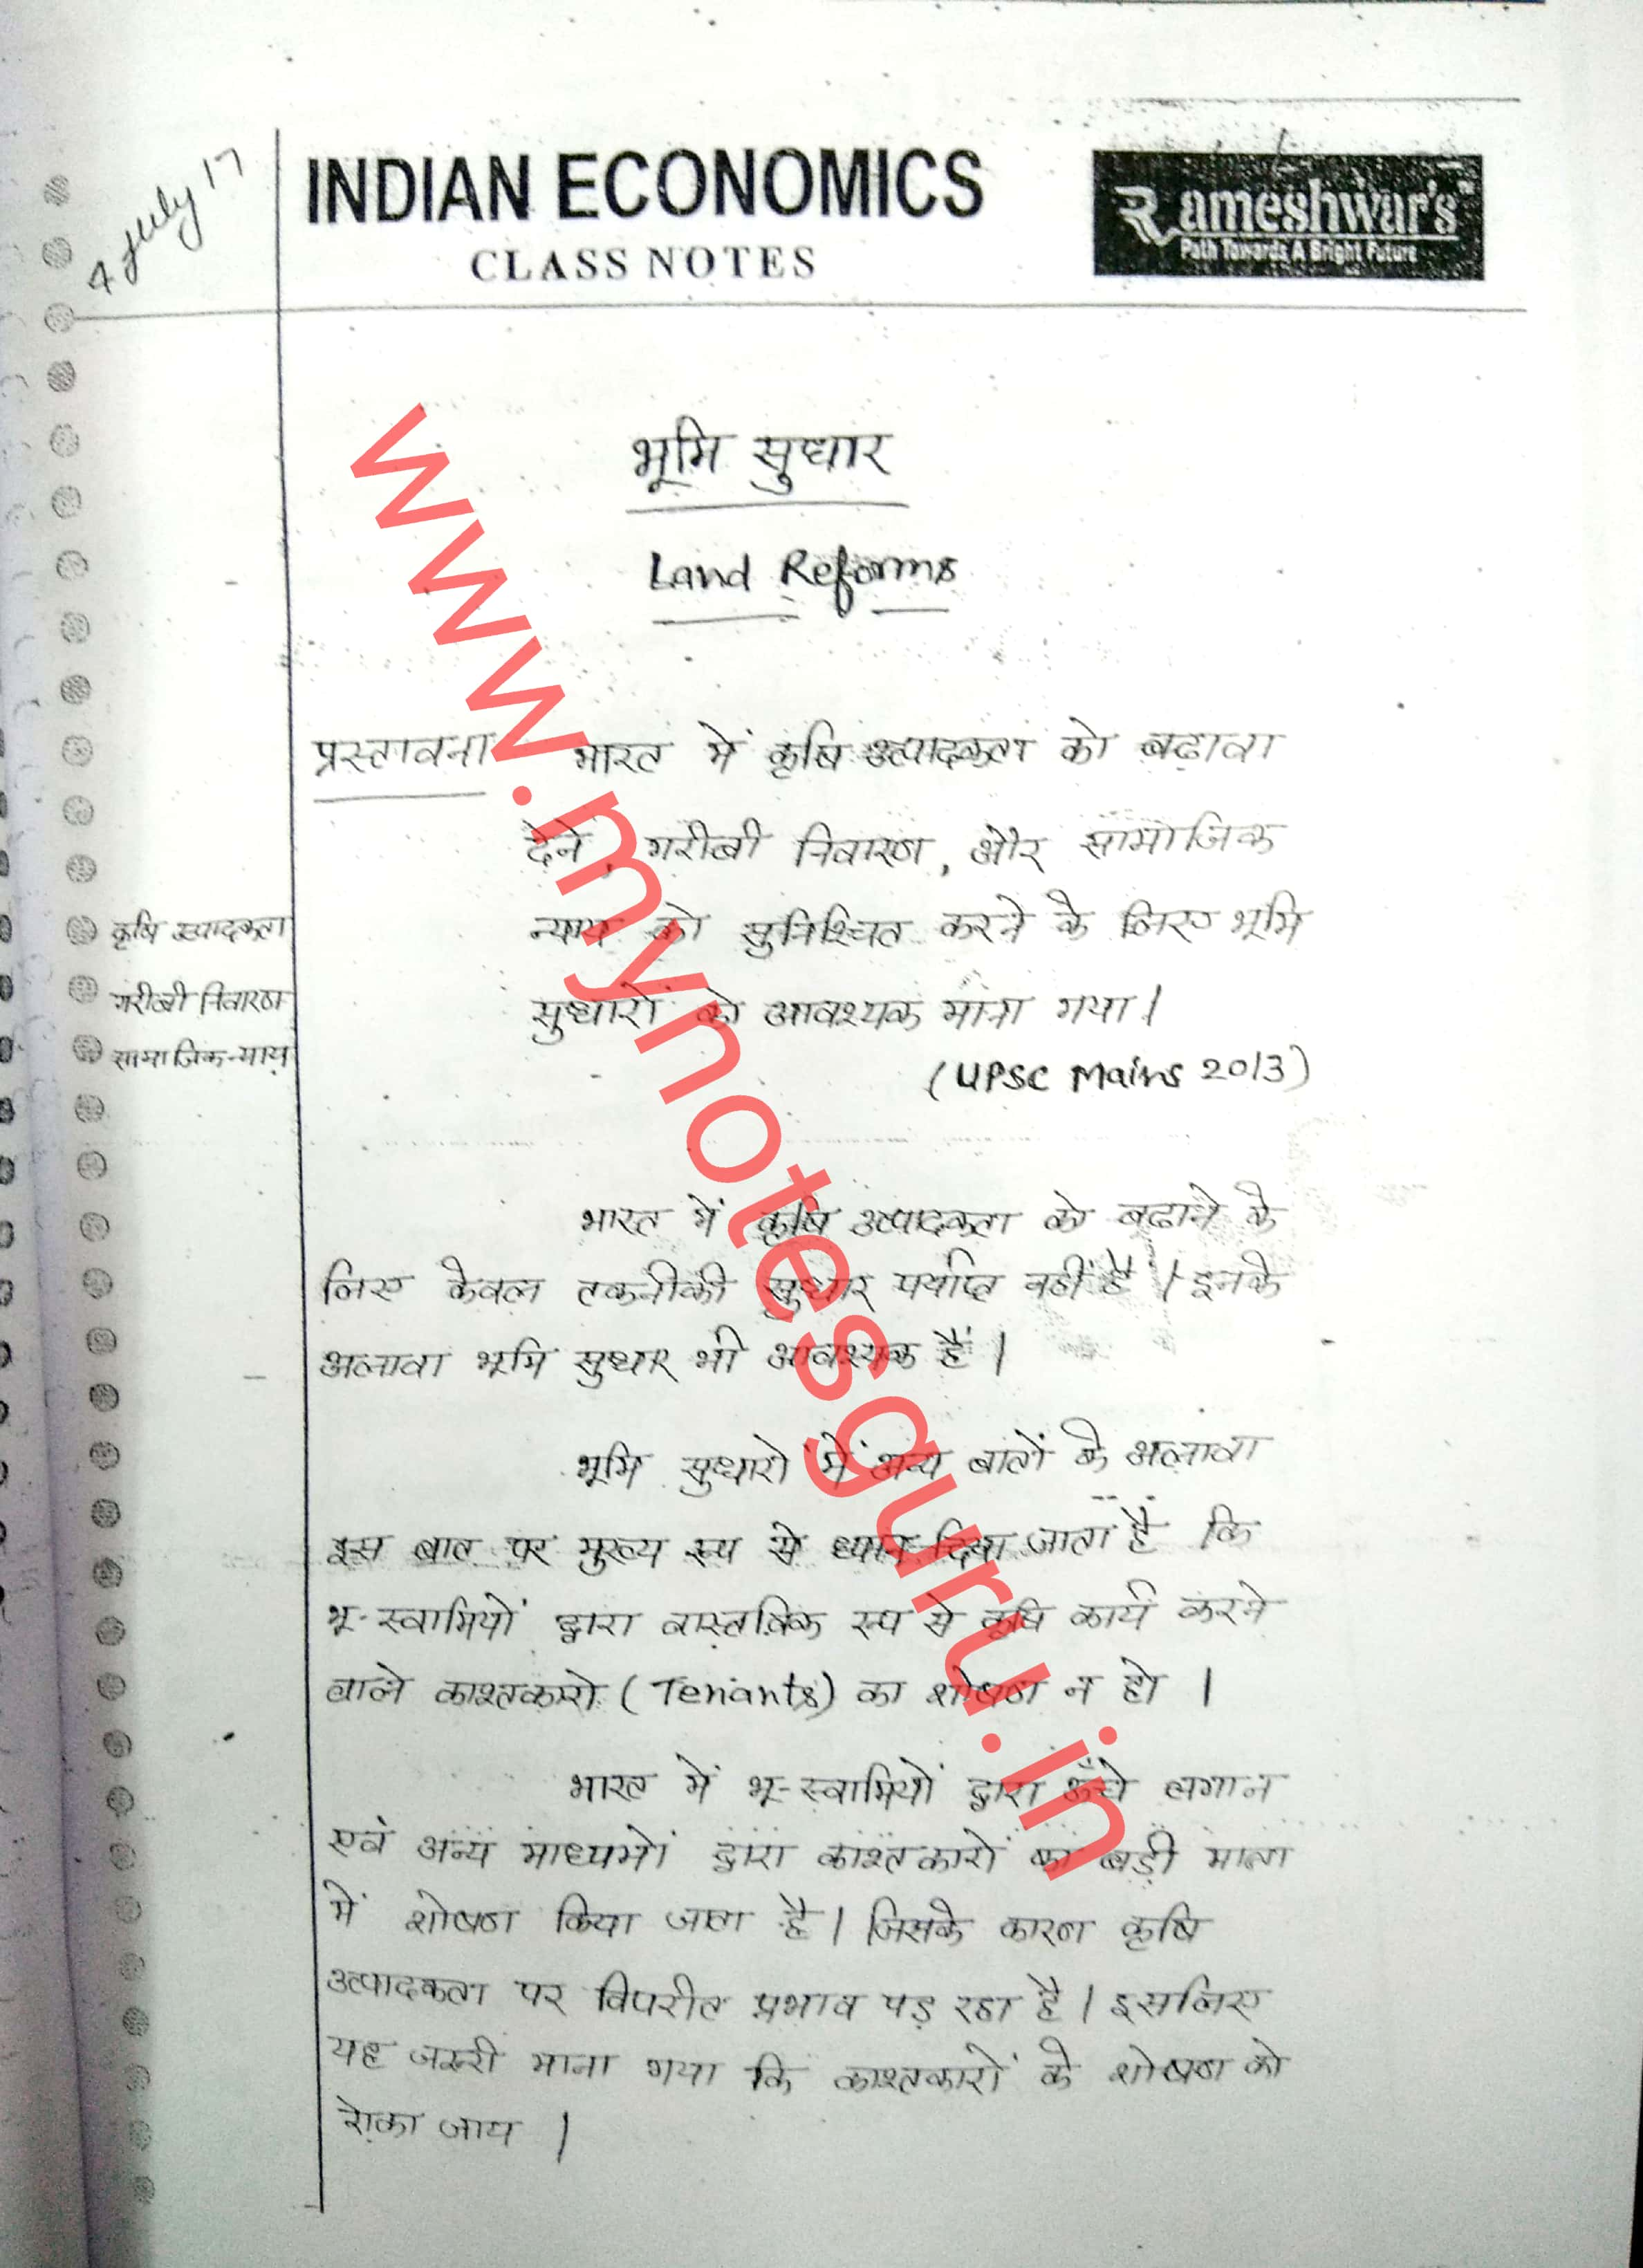 IAS GS Mains 3 - Rameshwar Sir - Economic - Class Notes - Hindi Medium